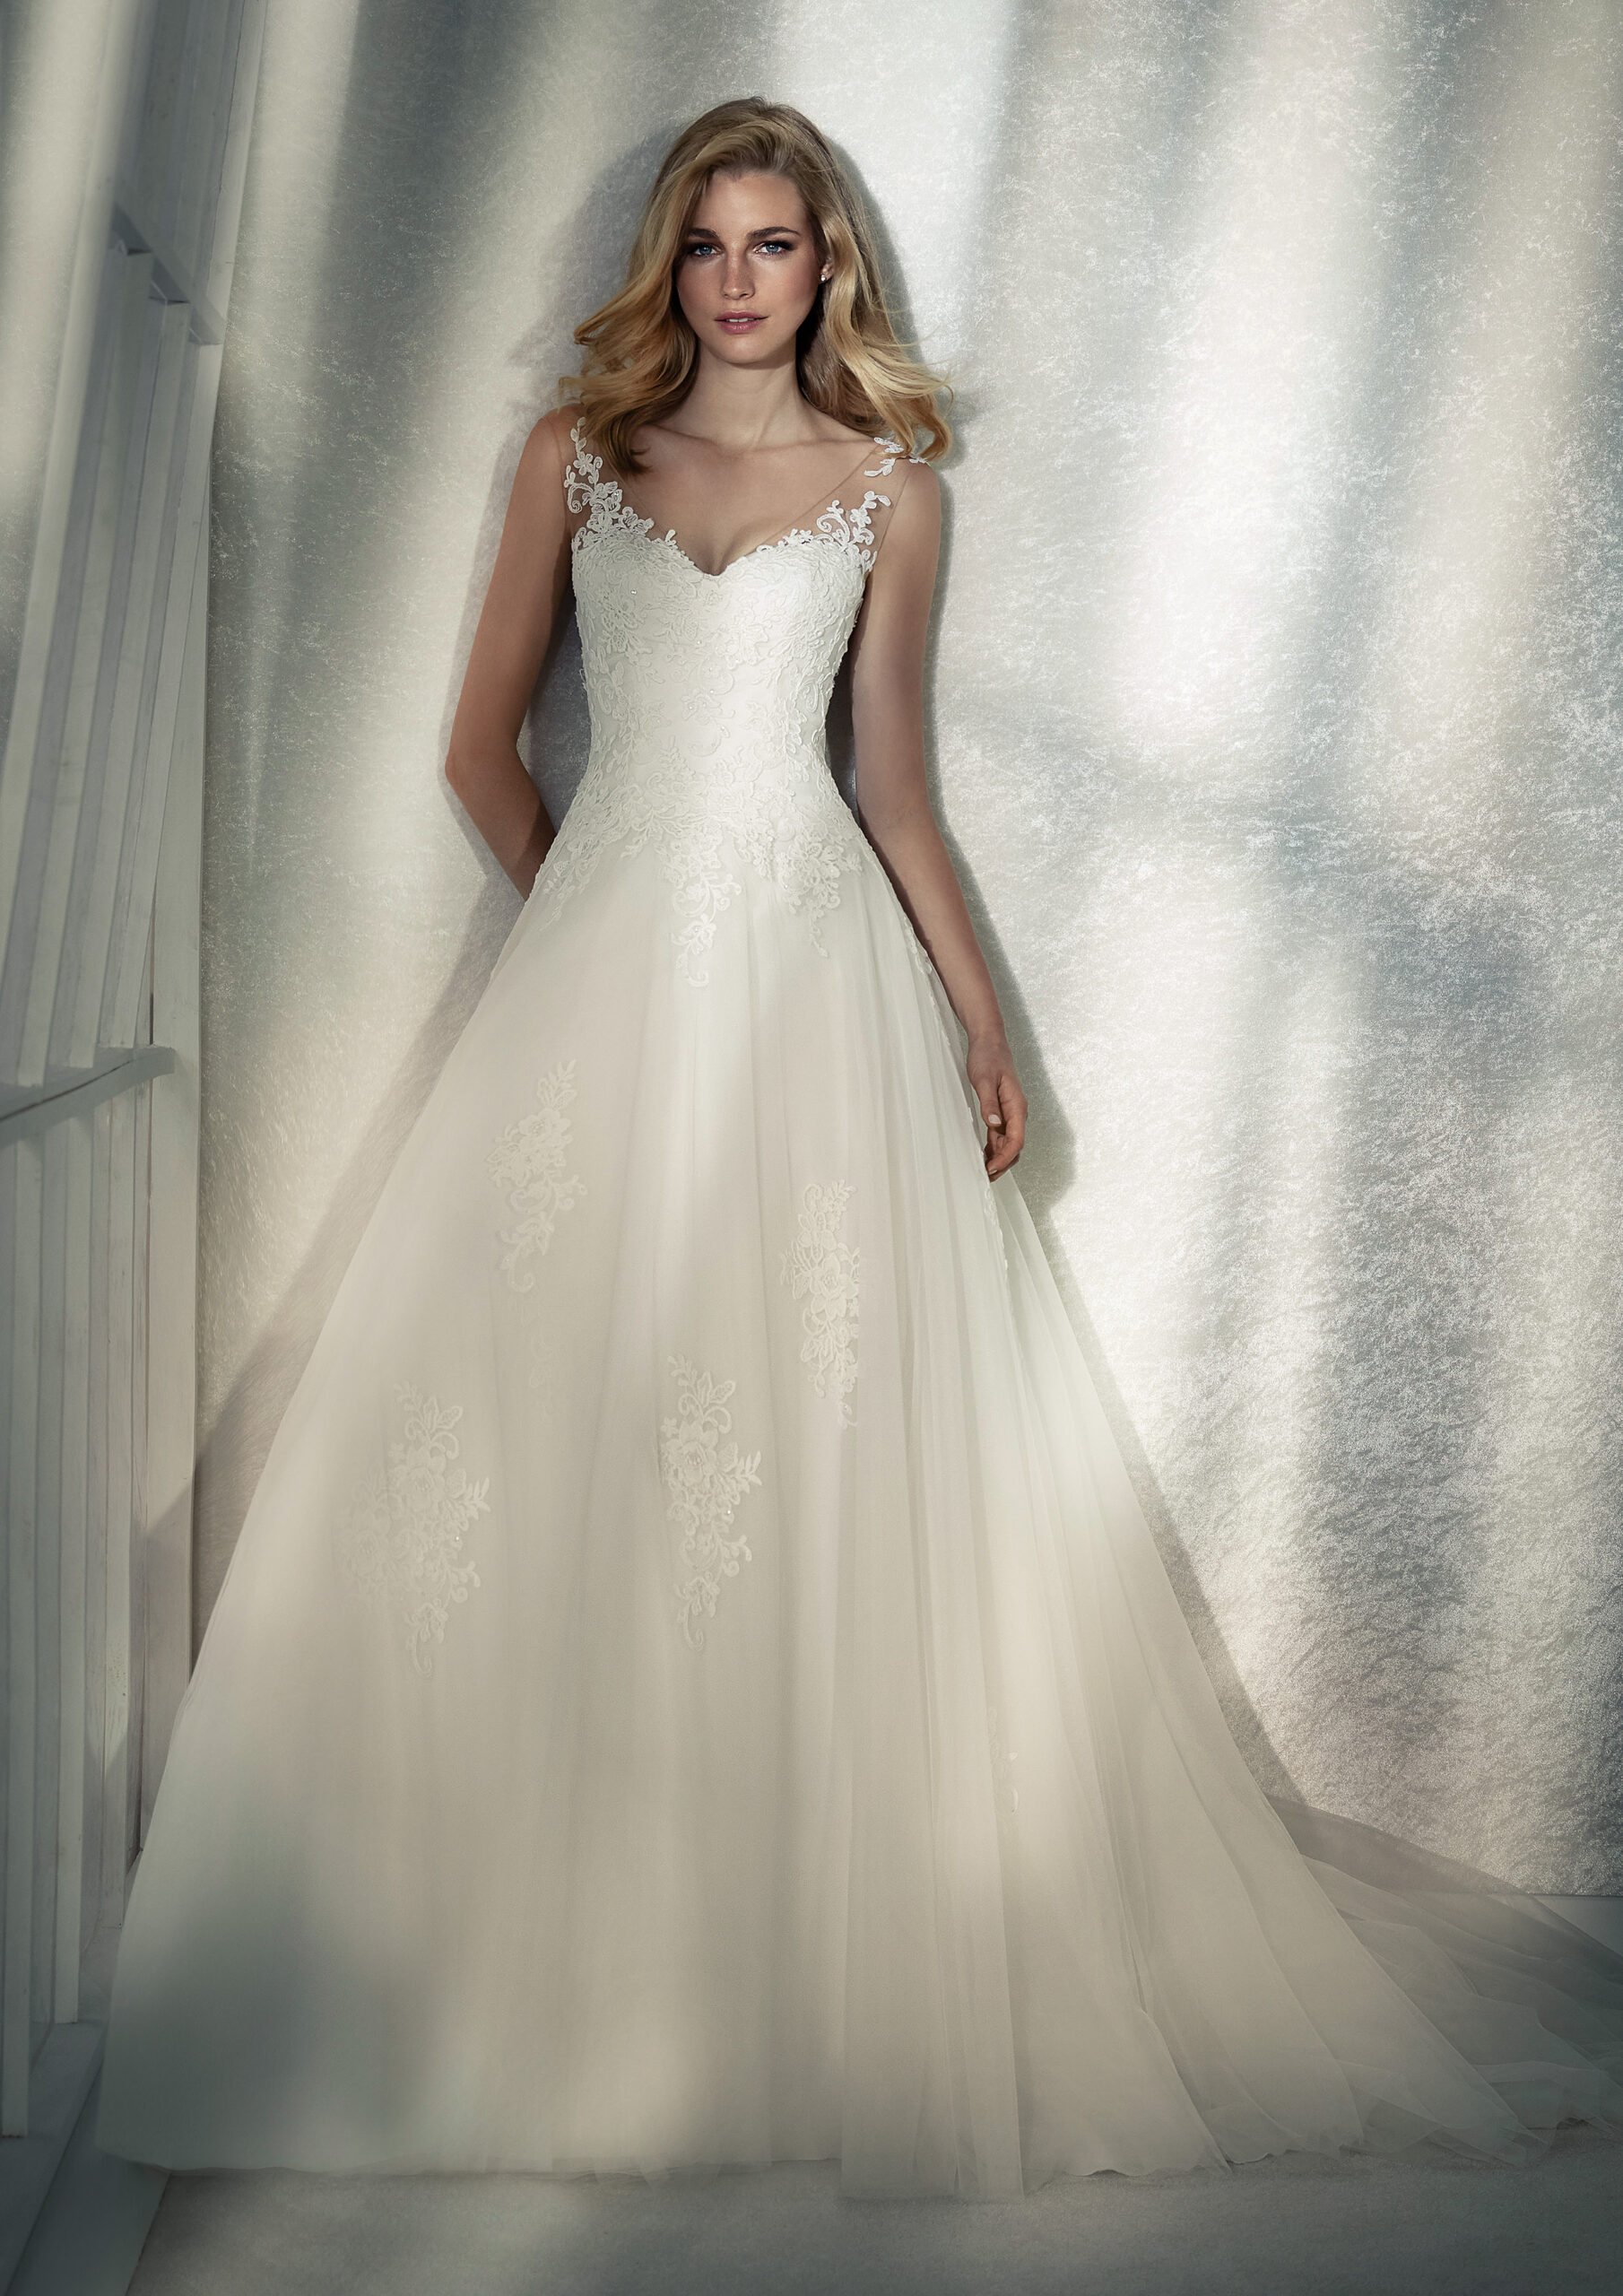 FEMME-B-3-white-one-whiteone-brautkleid-scaled